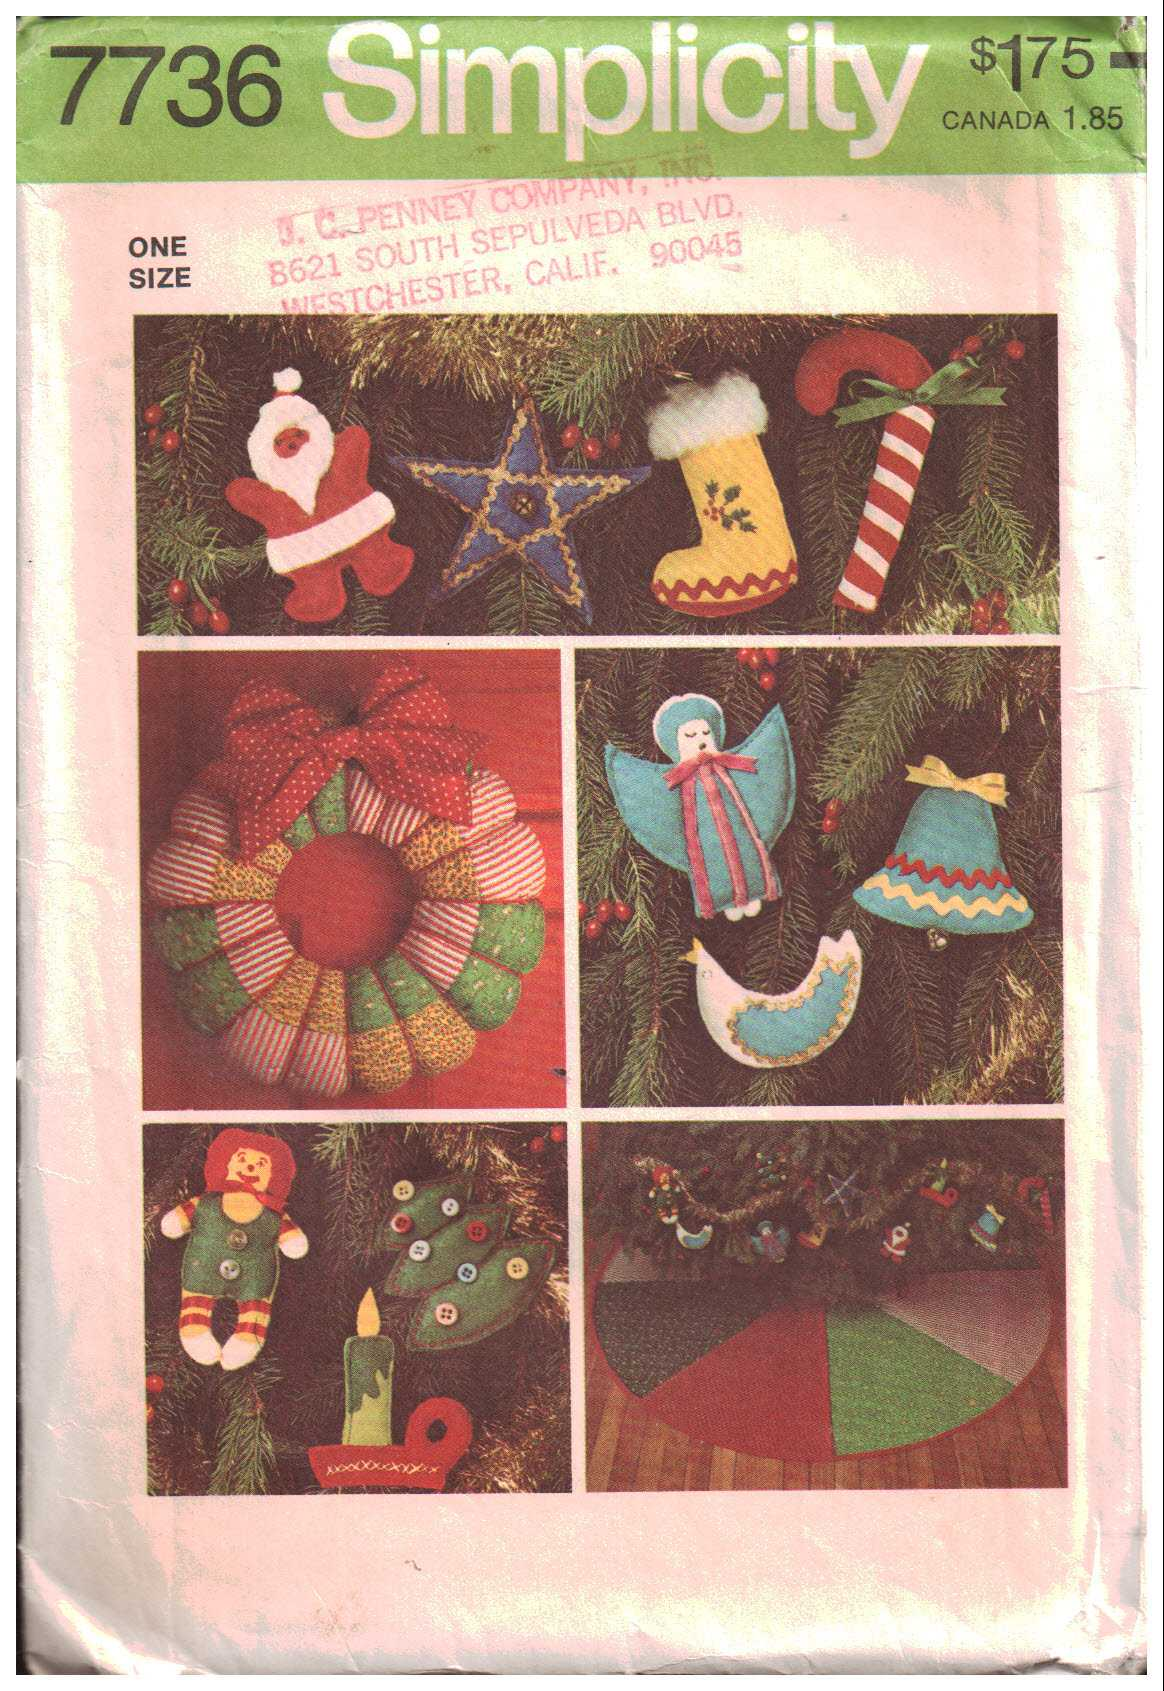 Simplicity 7736 Christmas Decorations – Tree Skirt, Wreath, Ornaments Size: One Used Sewing Pattern